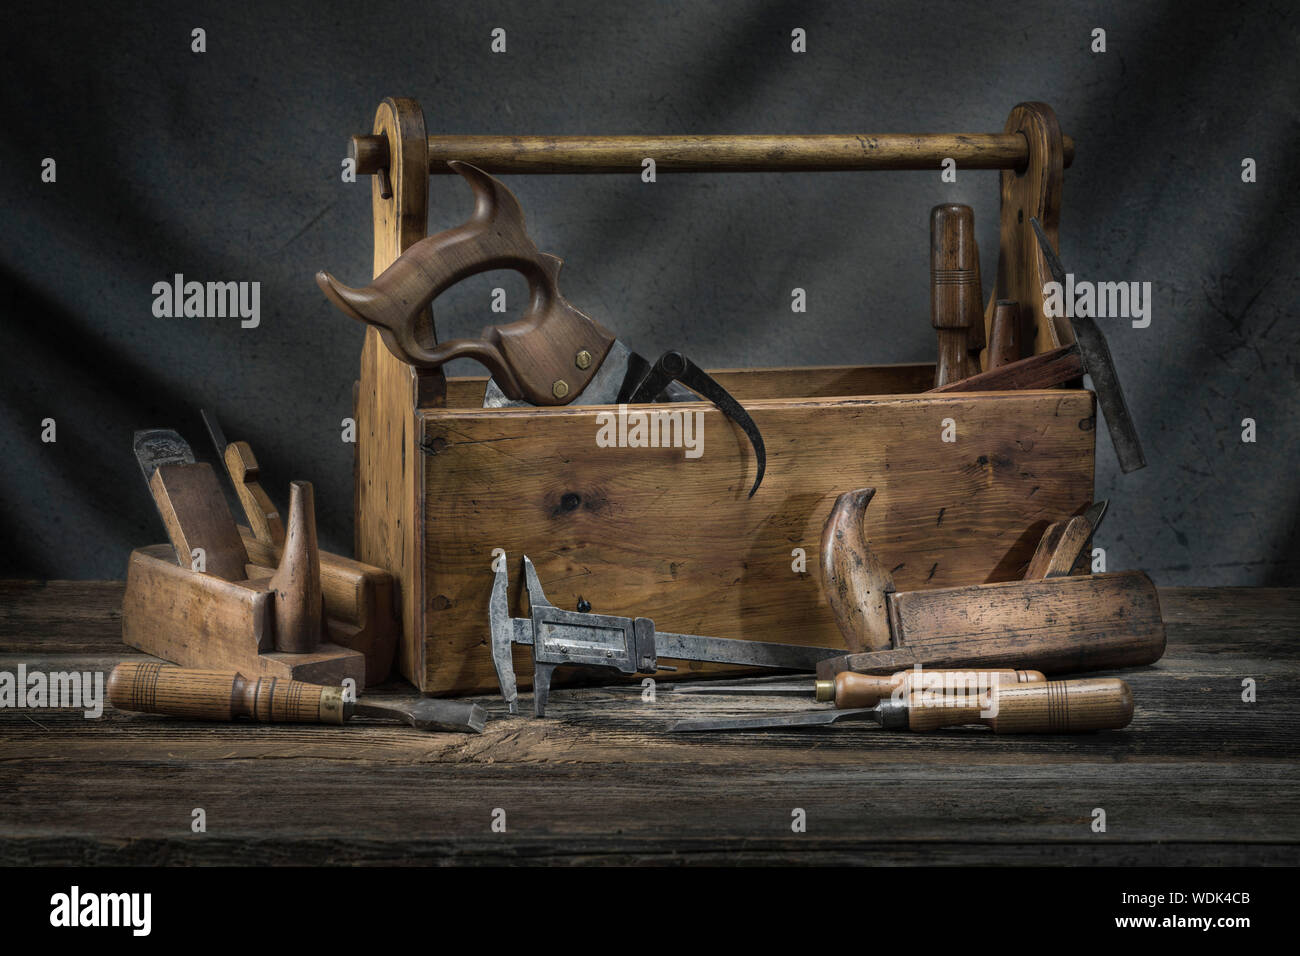 Still life - Old Wooden vintage toolbox with hammers, saw, chisels, plane and pliers in carpentry Stock Photo